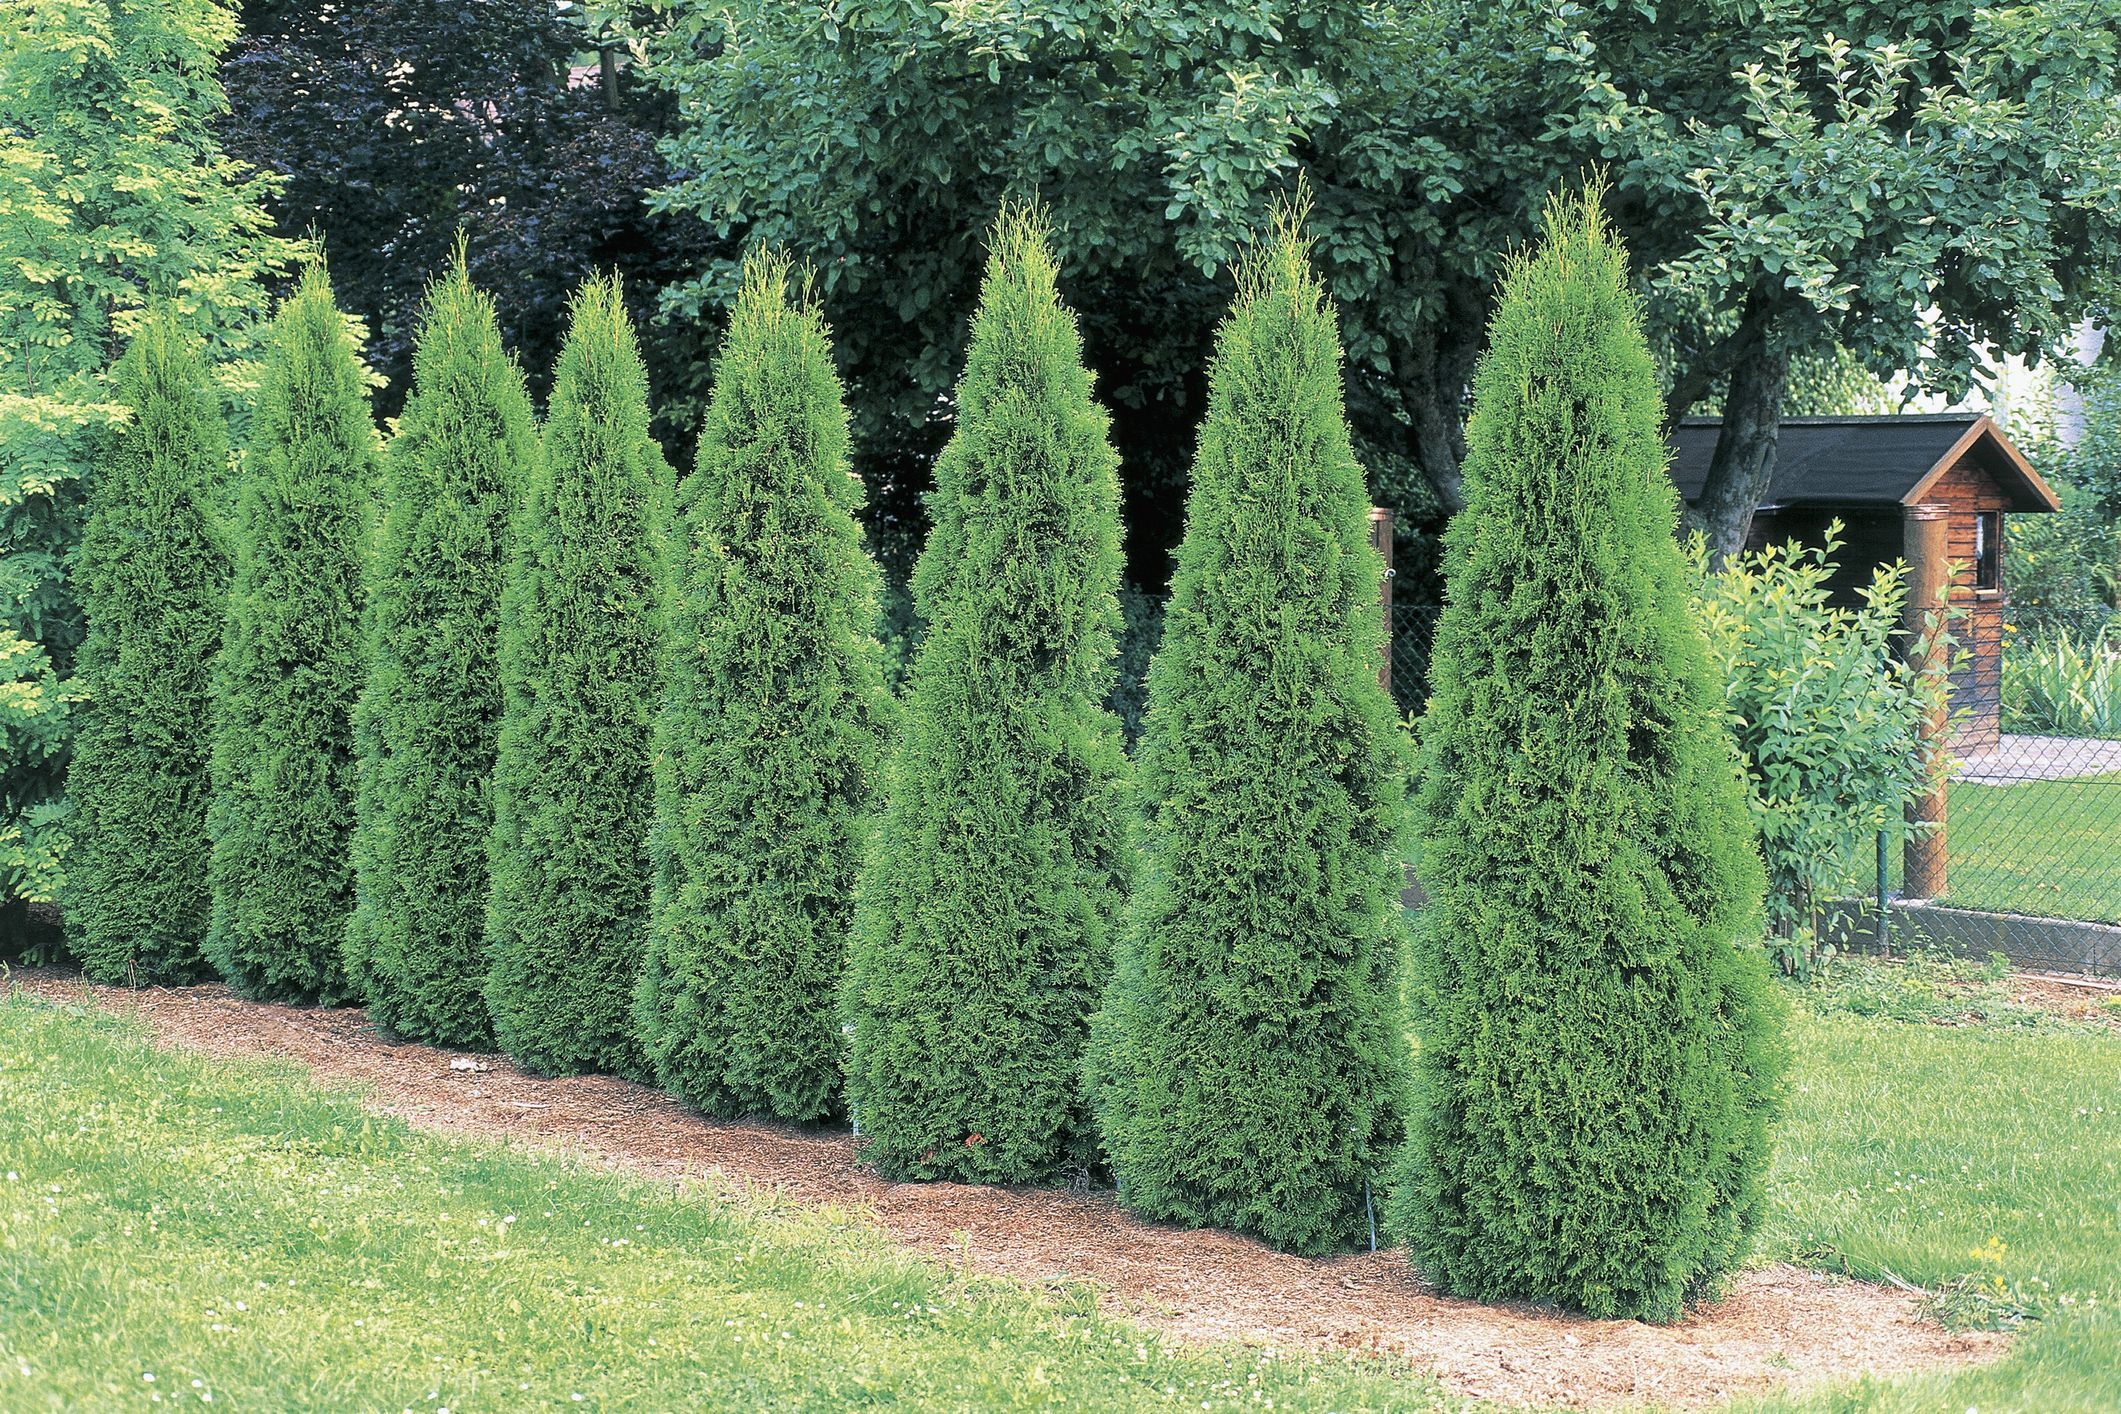 Emerald Green Arborvitae Care And Growing Guide